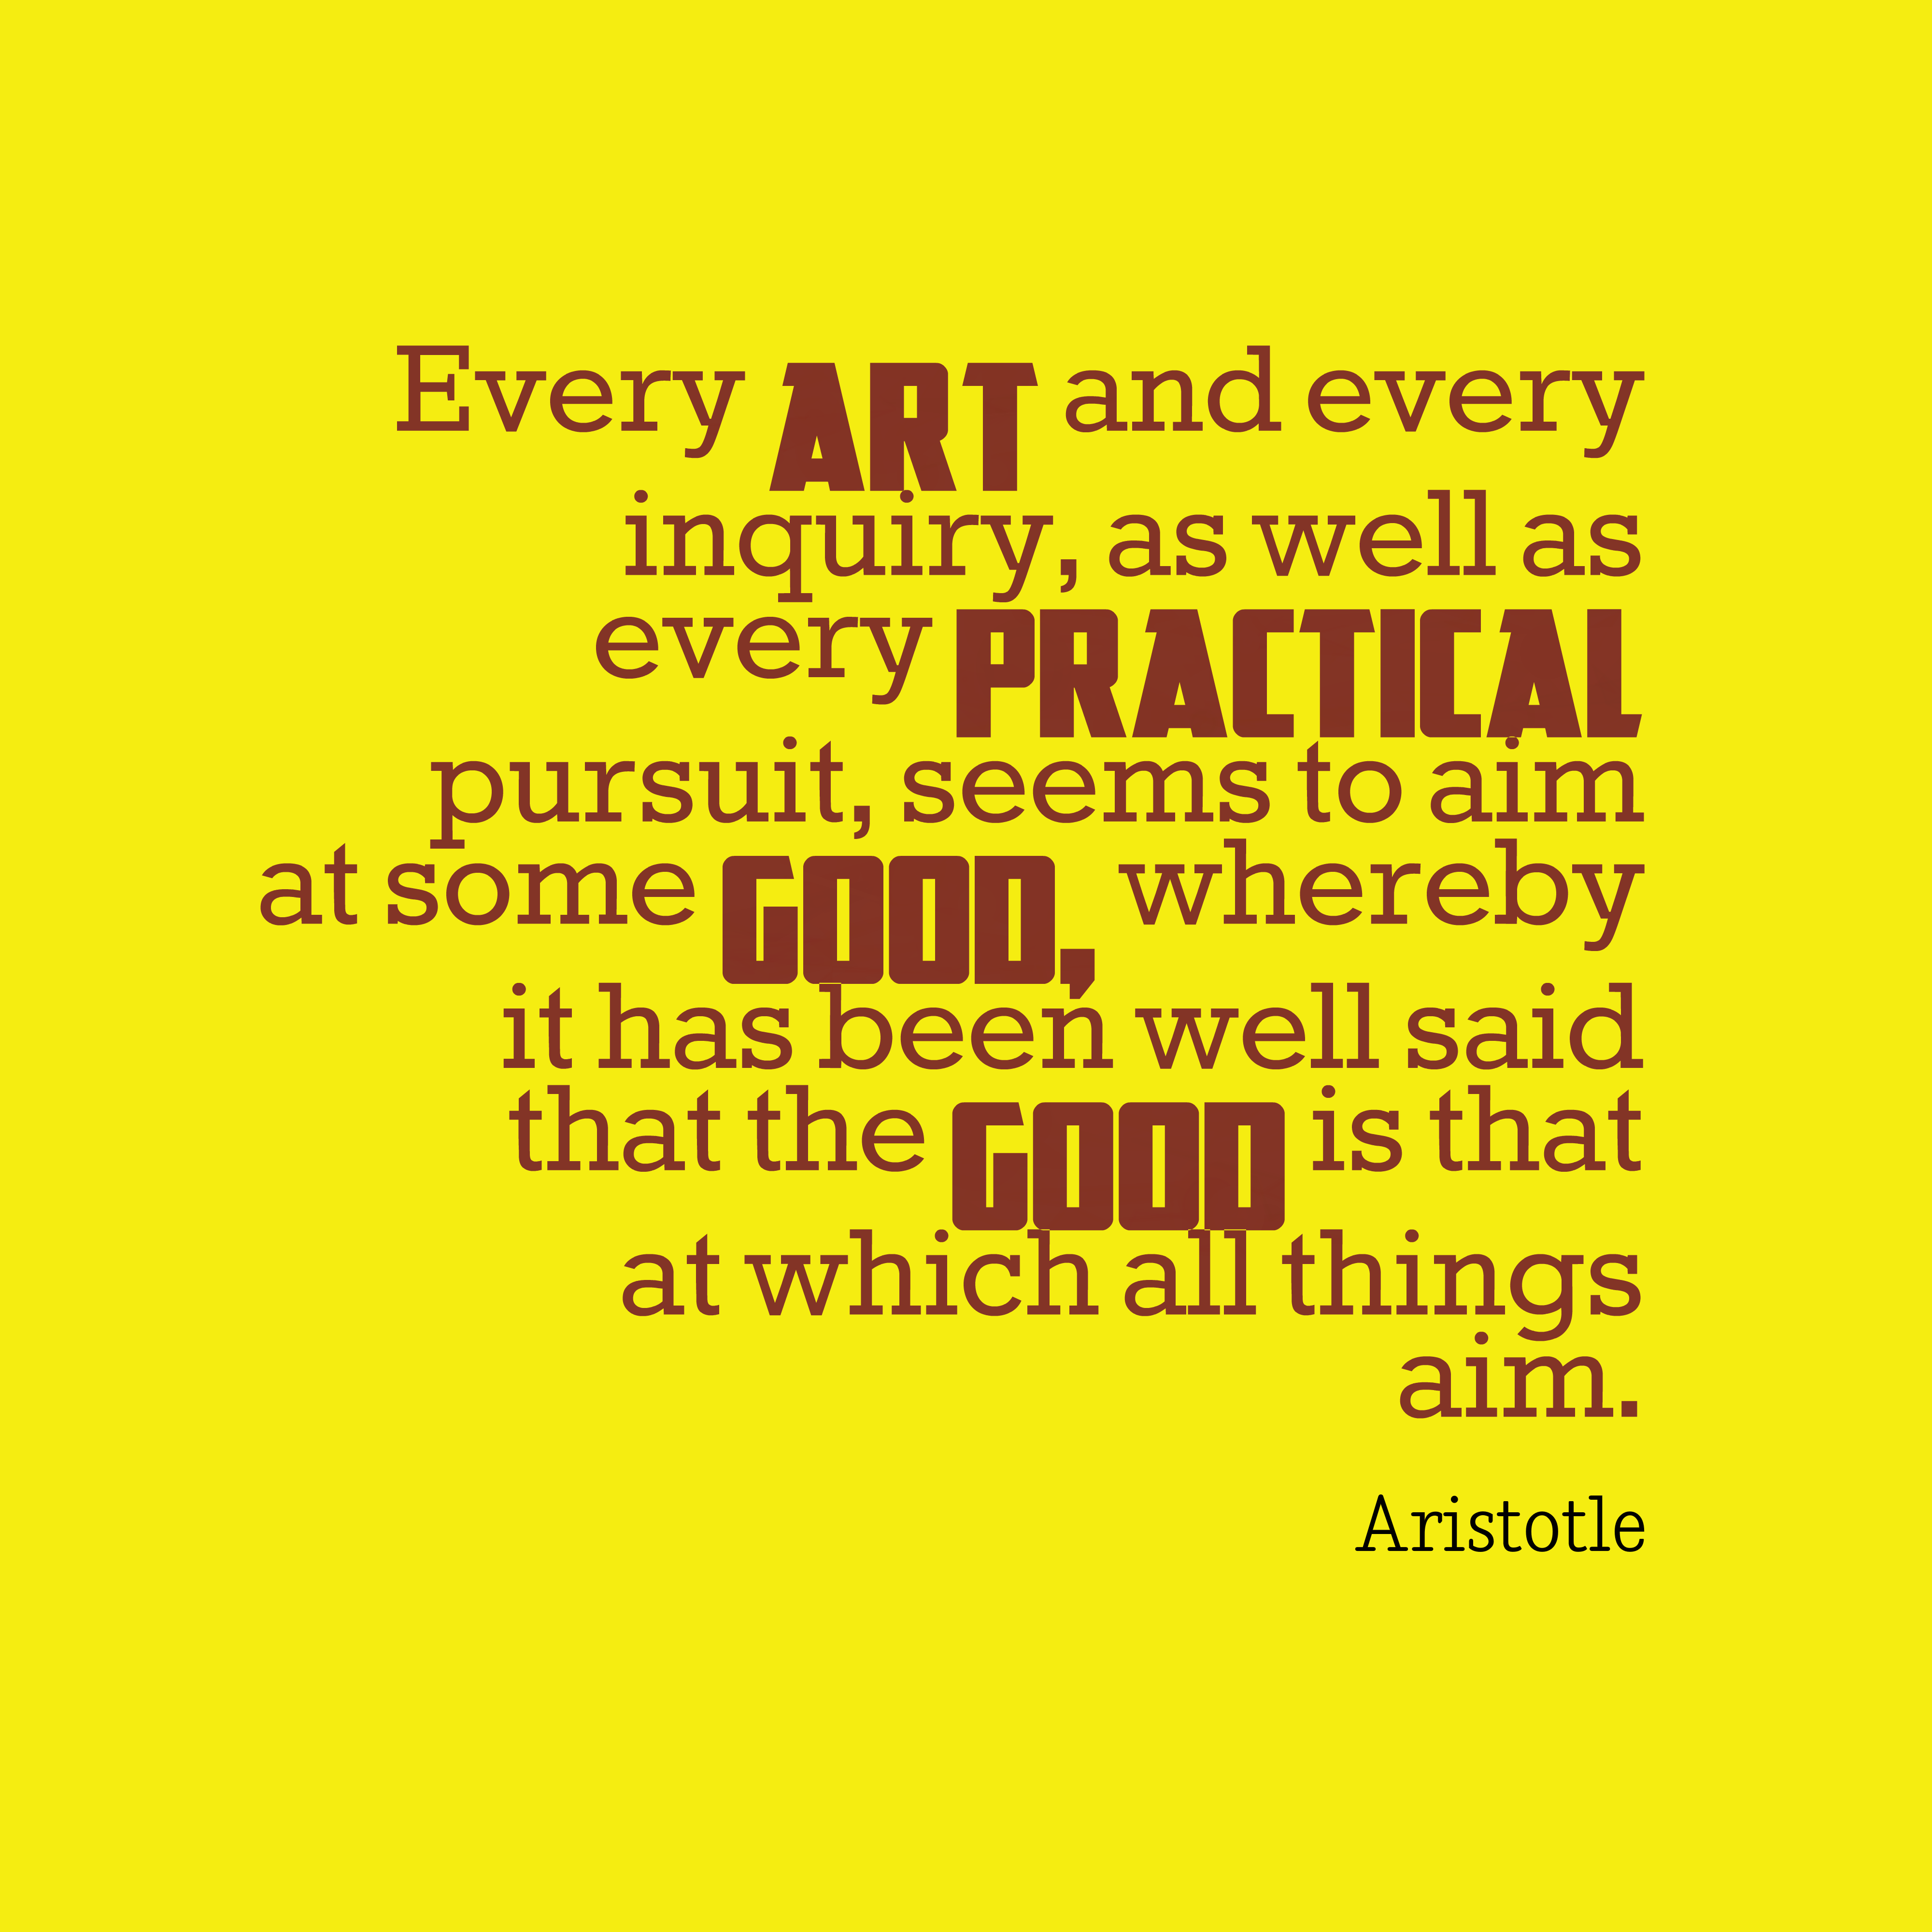 Quotes image of Every art and every inquiry, as well as every practical pursuit, seems to aim at some good, whereby it has been well said that the good is that at which all things aim.